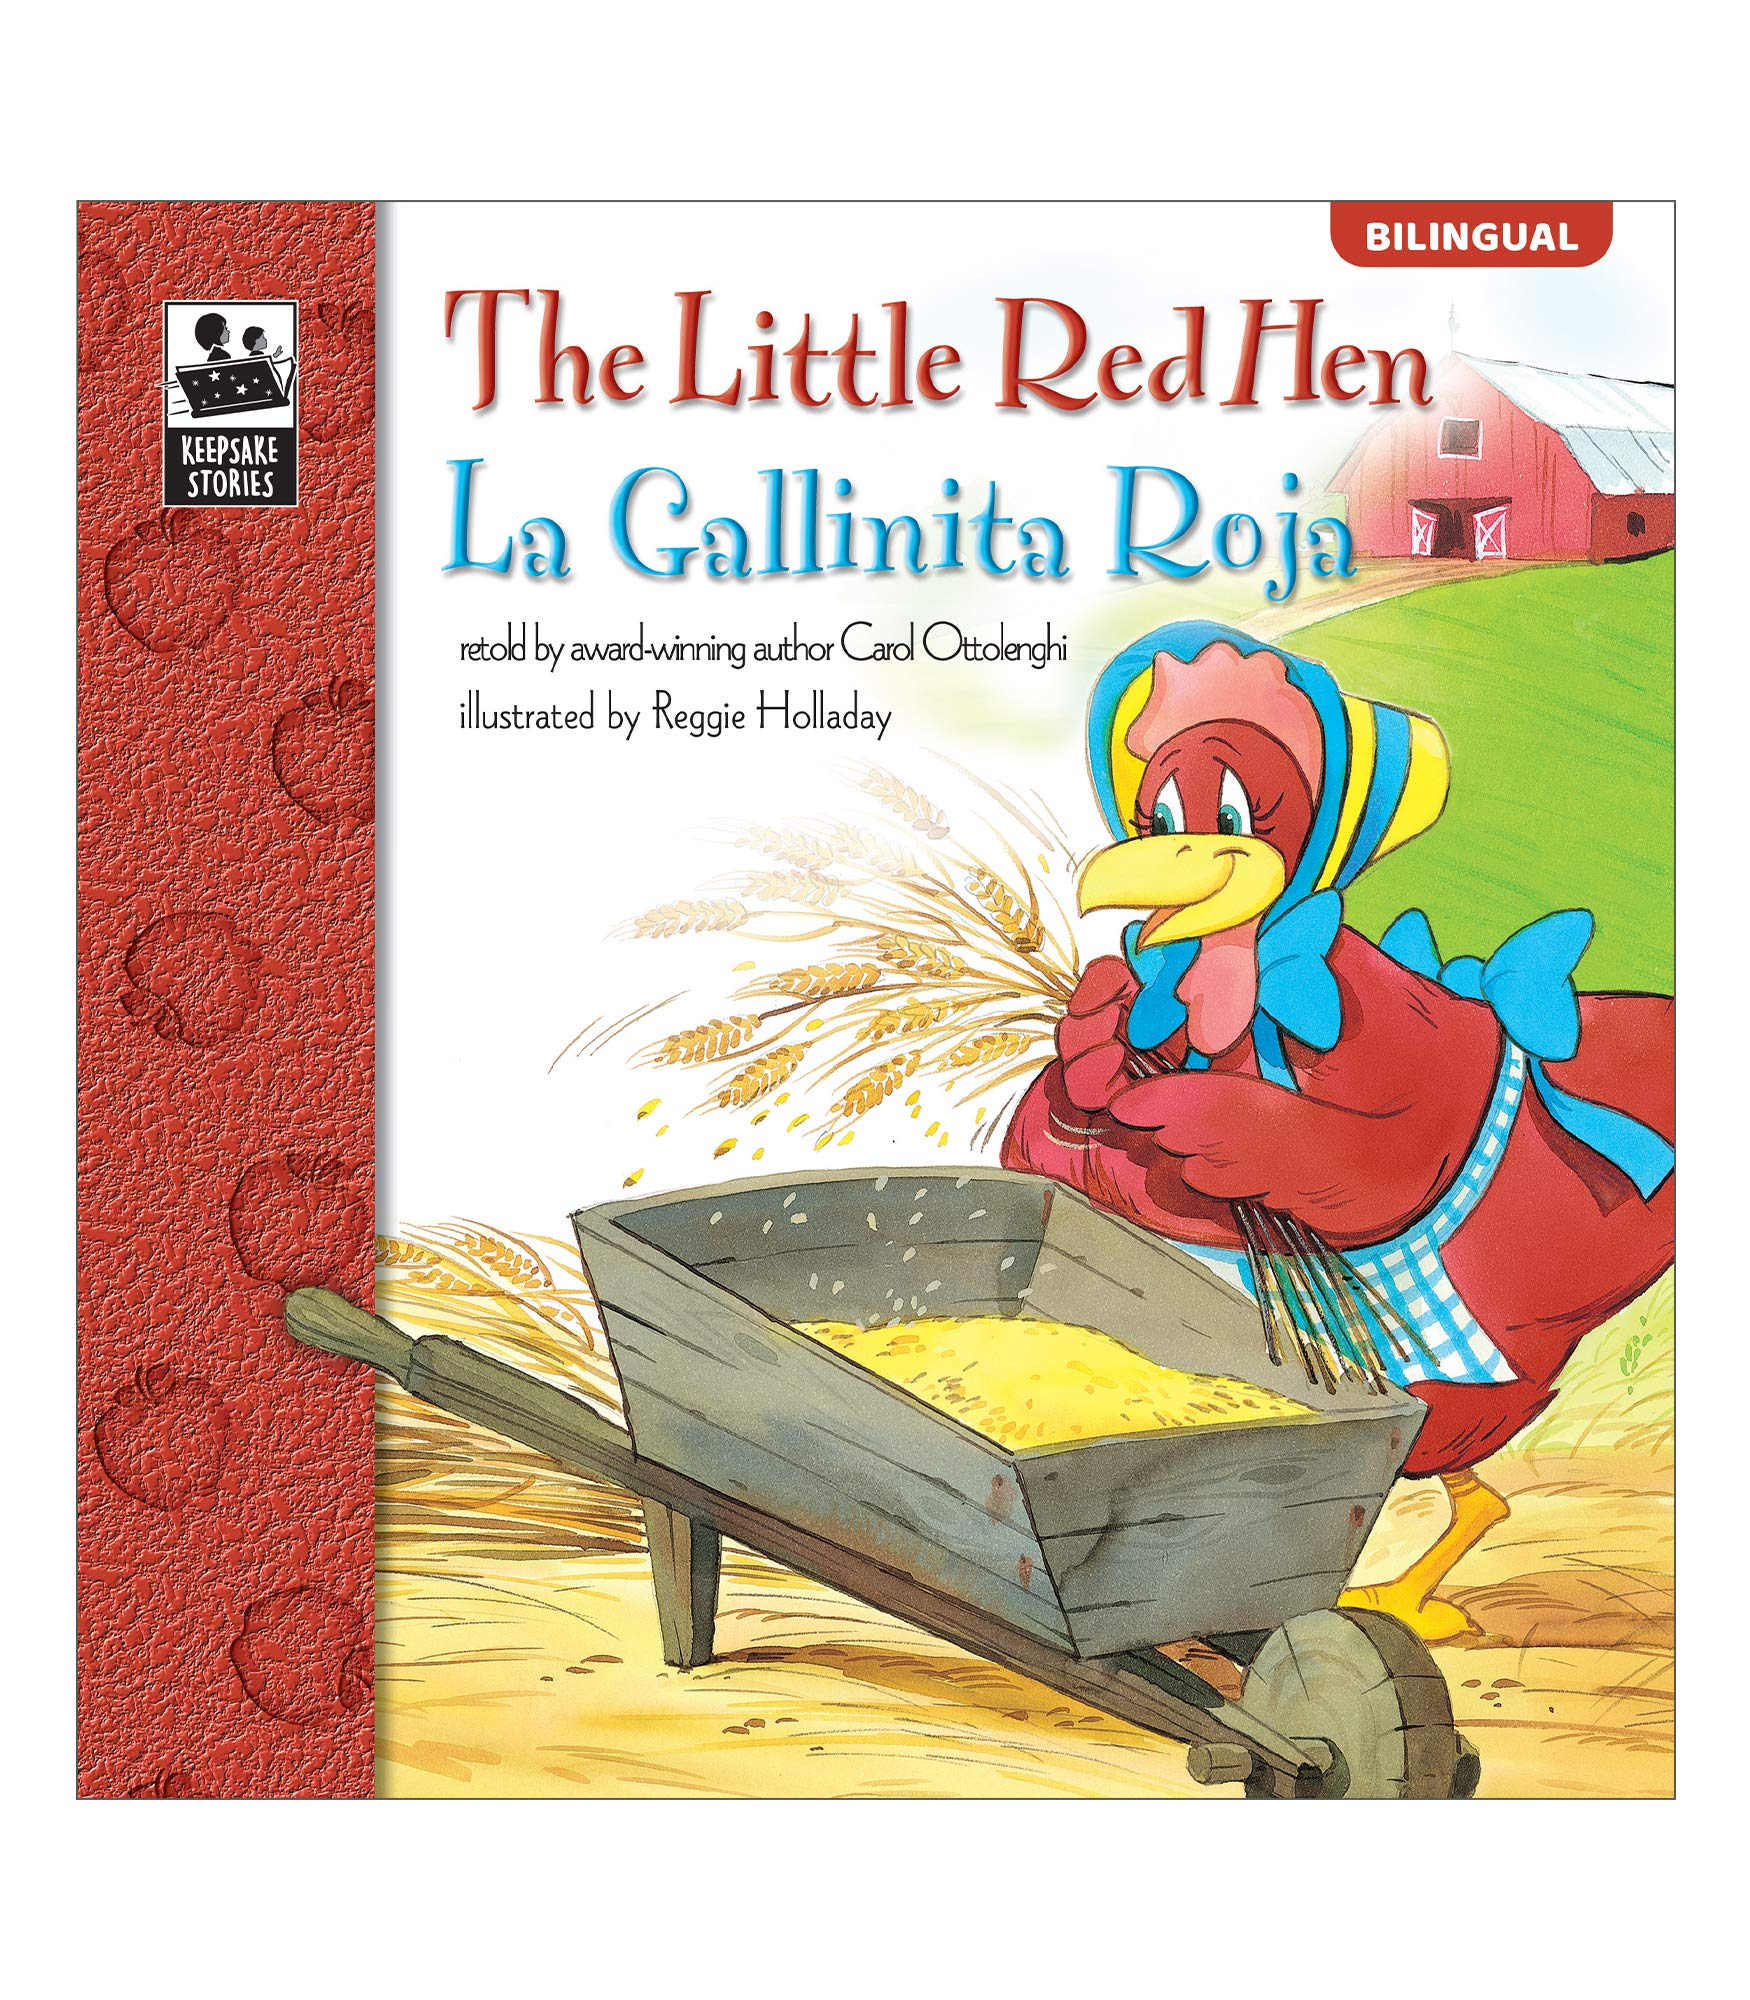 The Little Red Hen La Gallinita Roja Bilingual Storybook—Classic Children's Books With Illustrations for Young Readers, Keepsake Stories Collection (32 pgs)